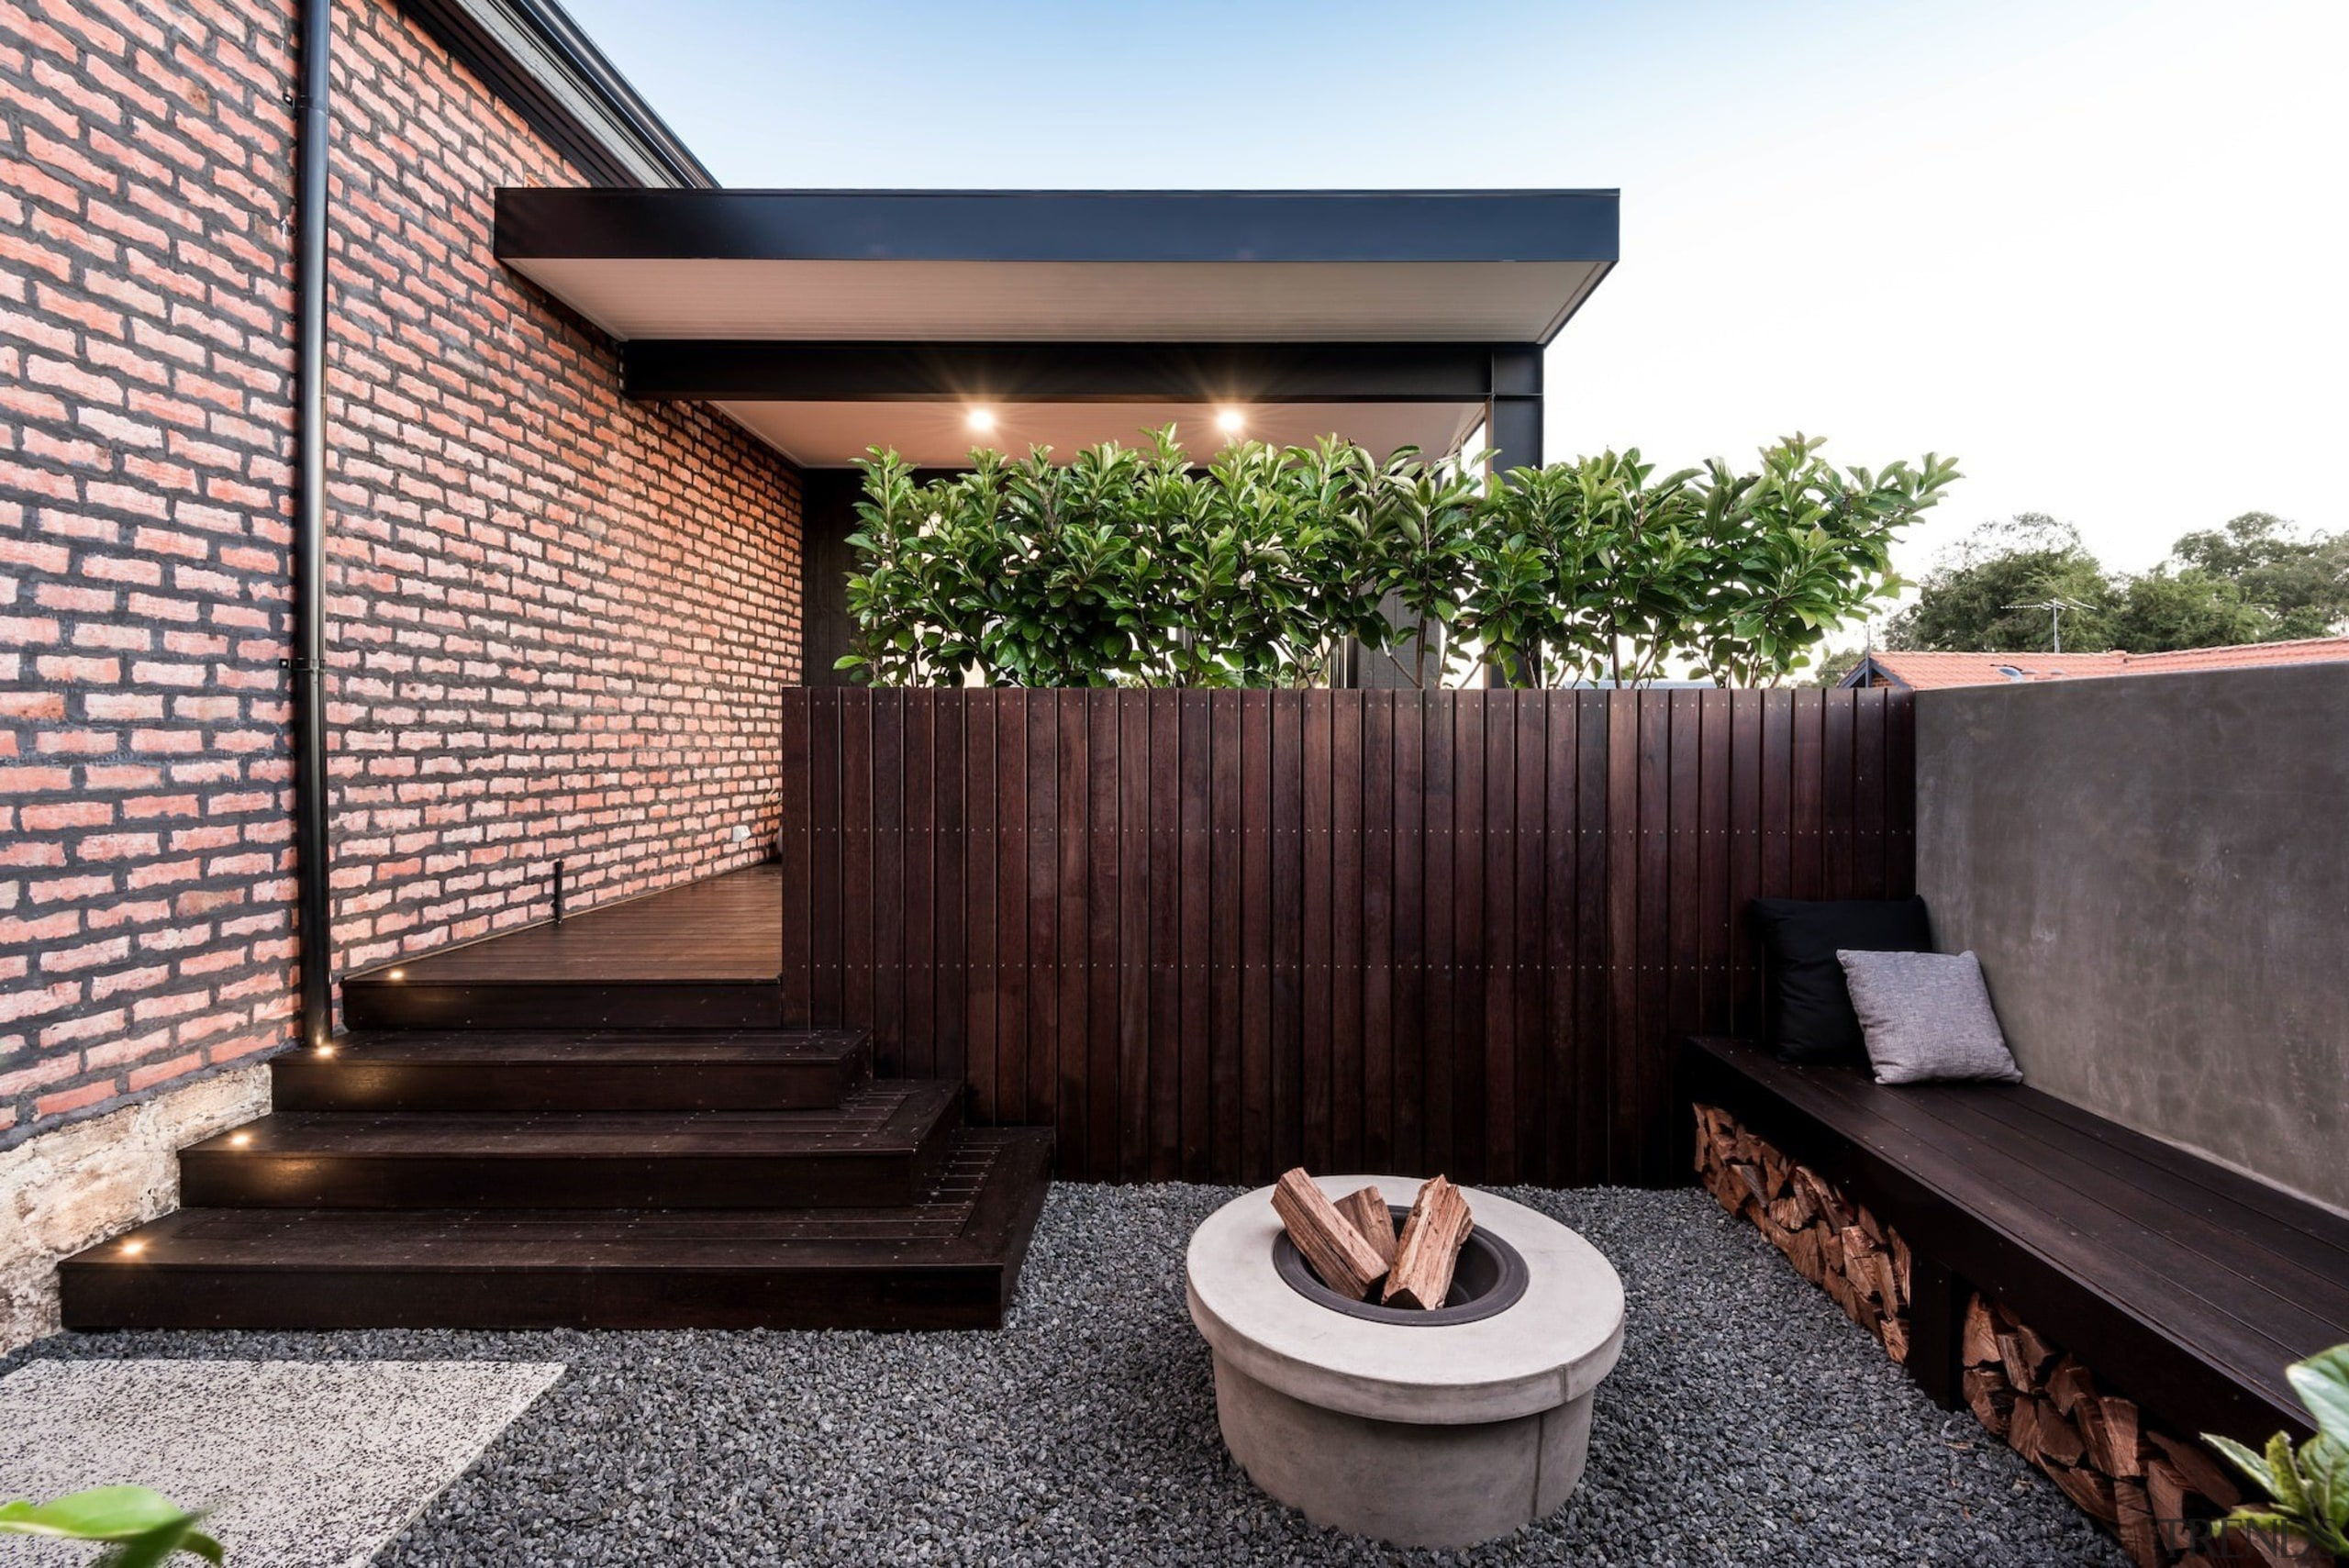 This private outdoor area features a fire pit architecture, courtyard, facade, home, house, outdoor structure, property, real estate, residential area, roof, black, white